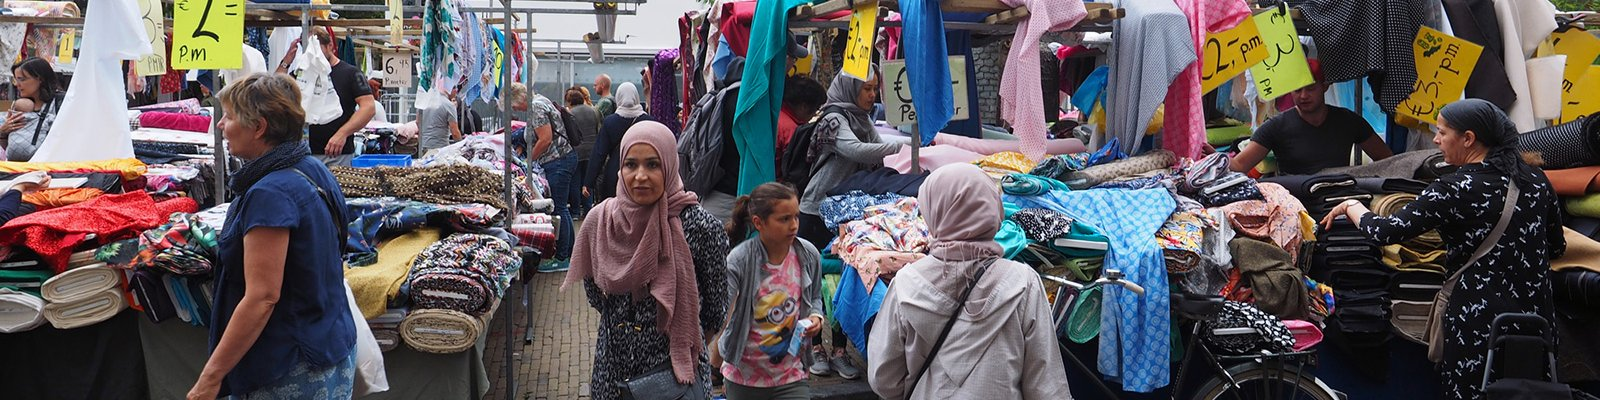 Visitors with various cultural backgrounds at the fabric market in the city center of Utrecht (photo: iStock: digitalimagination)